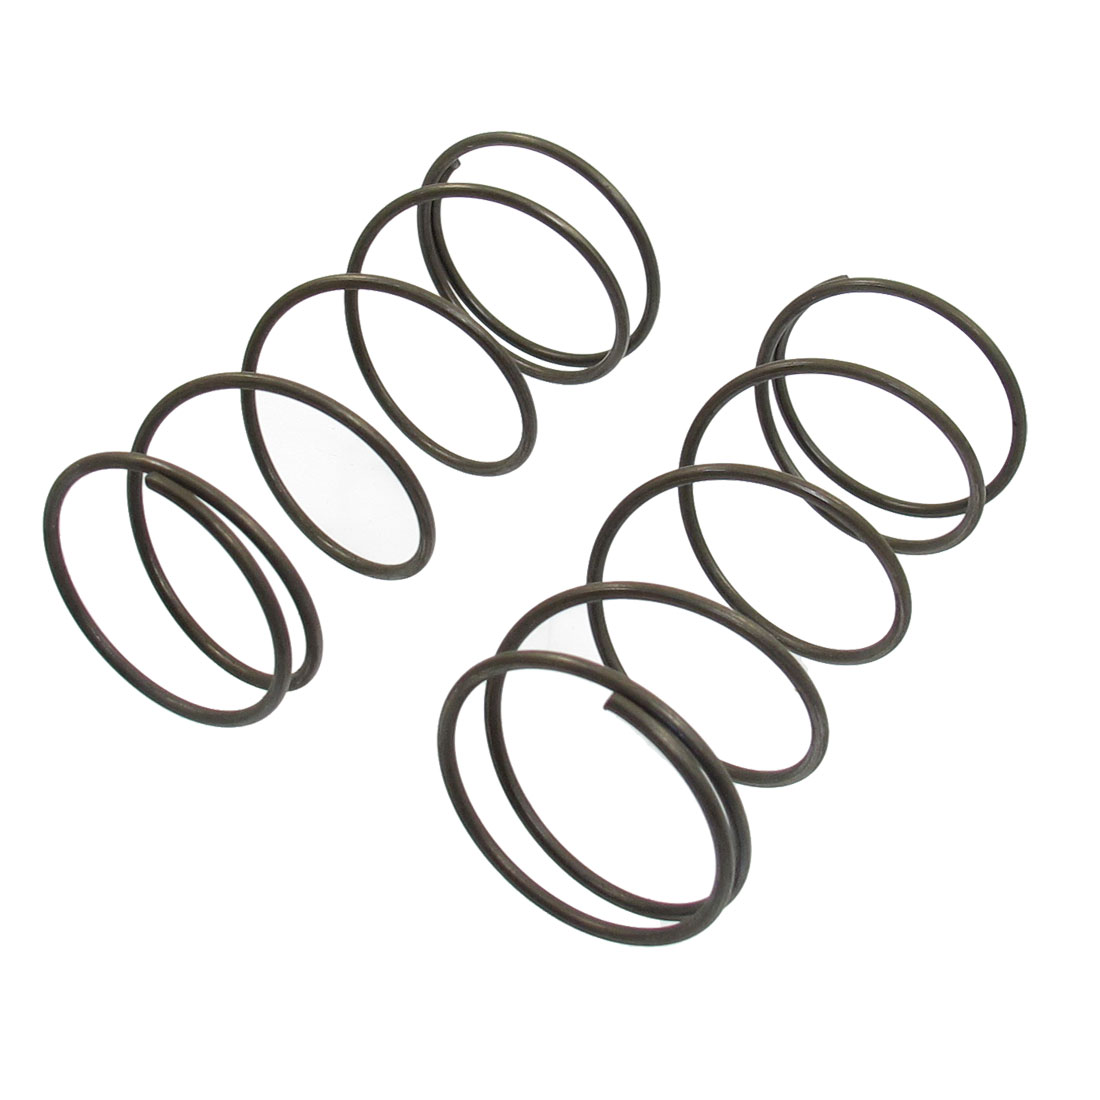 5 Pcs Electric Tool Coil Spring 75mmx33mm for ZIC-FF-26 Electric Hammer